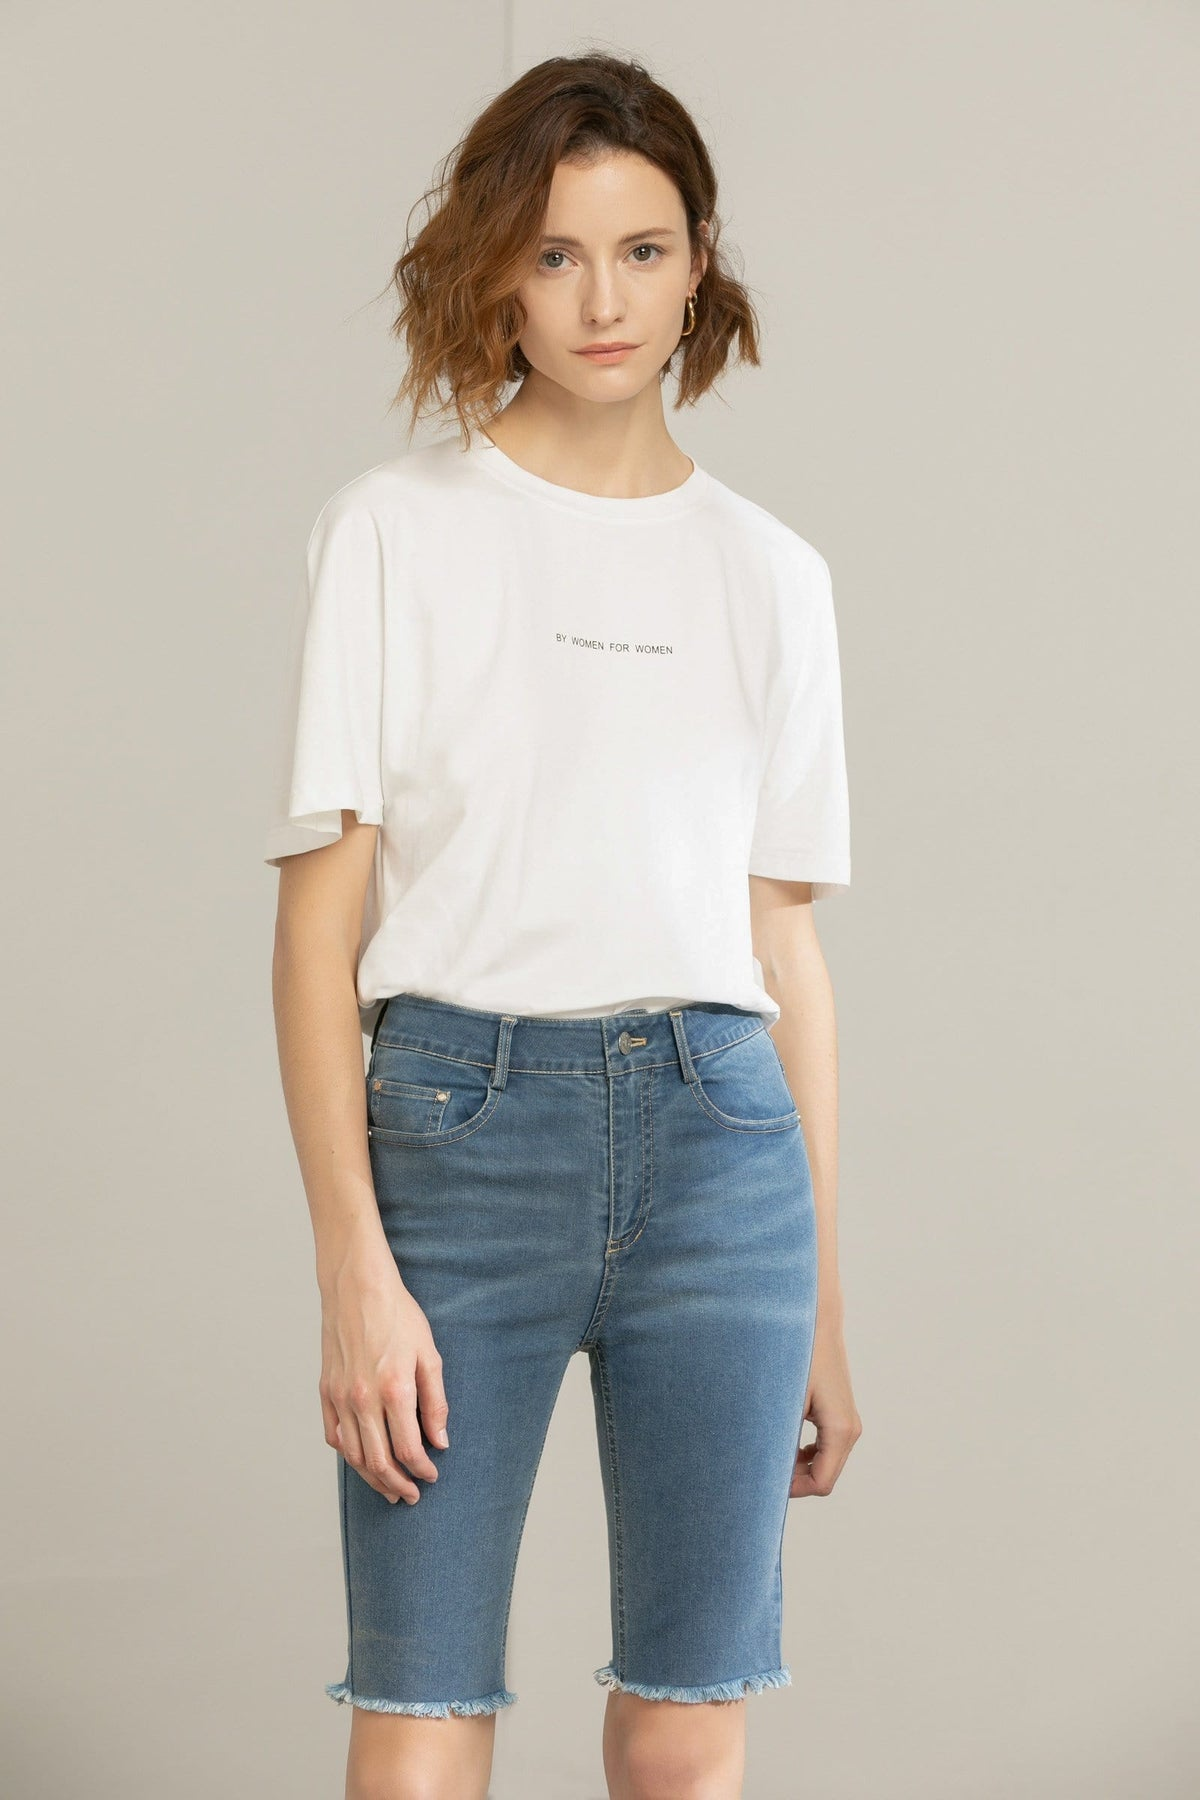 Oversize Boyfriend Tee in White